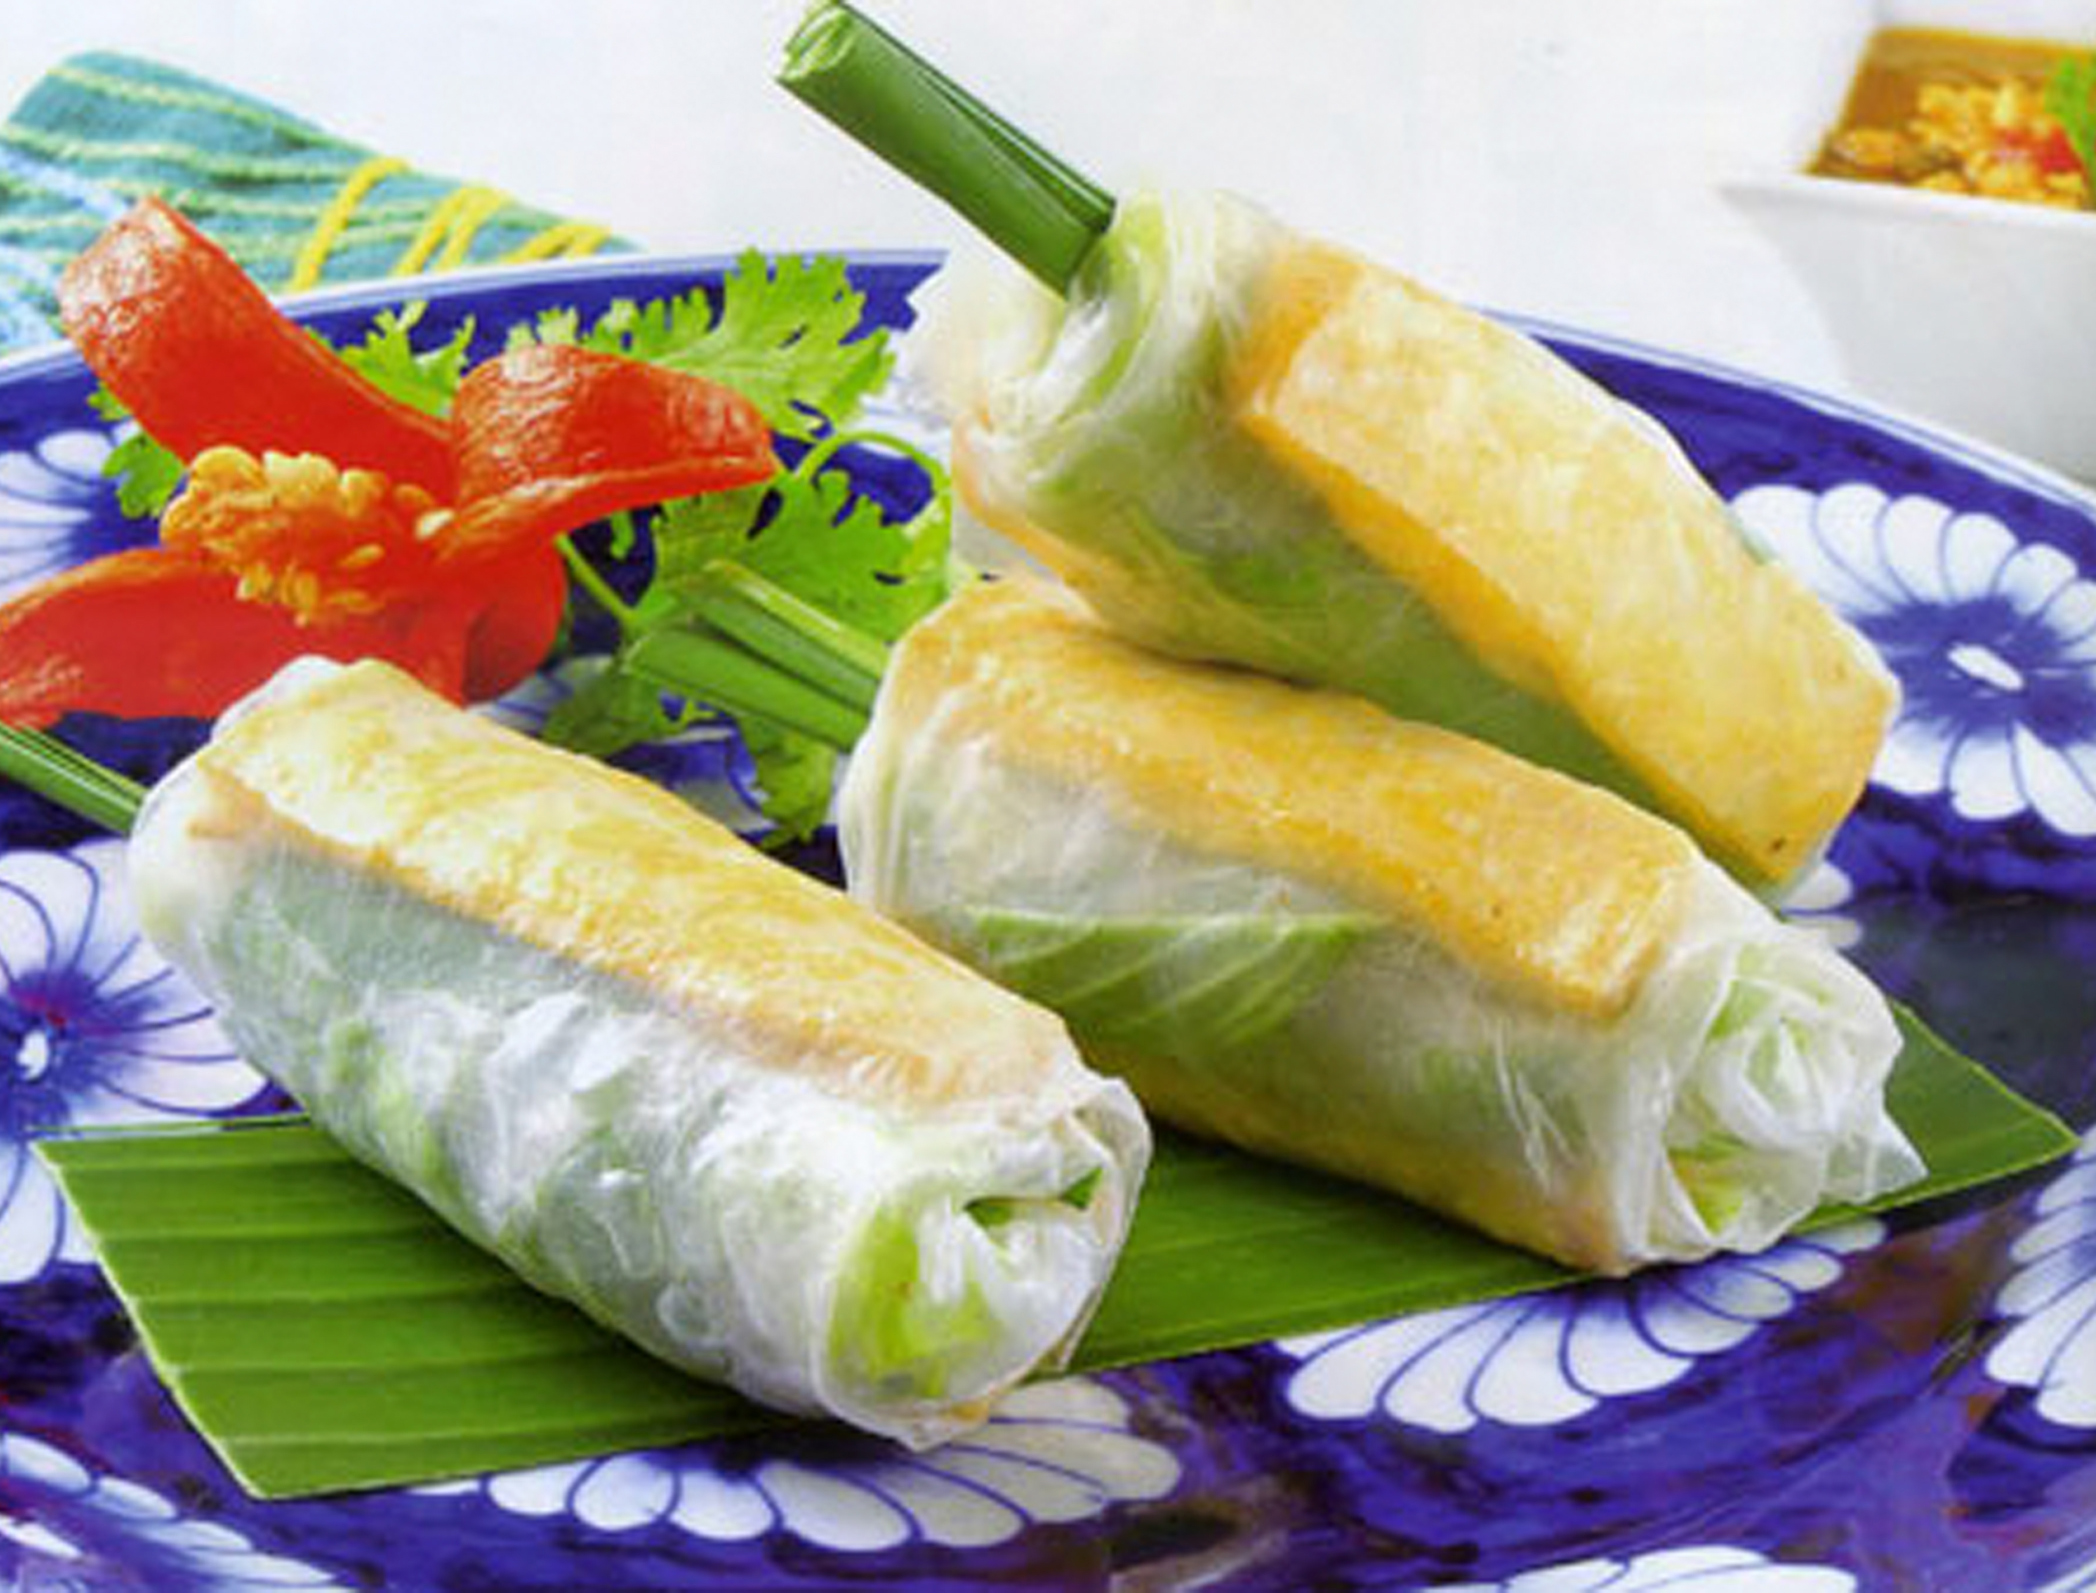 Tofu Spring Roll - 3 for $3.99